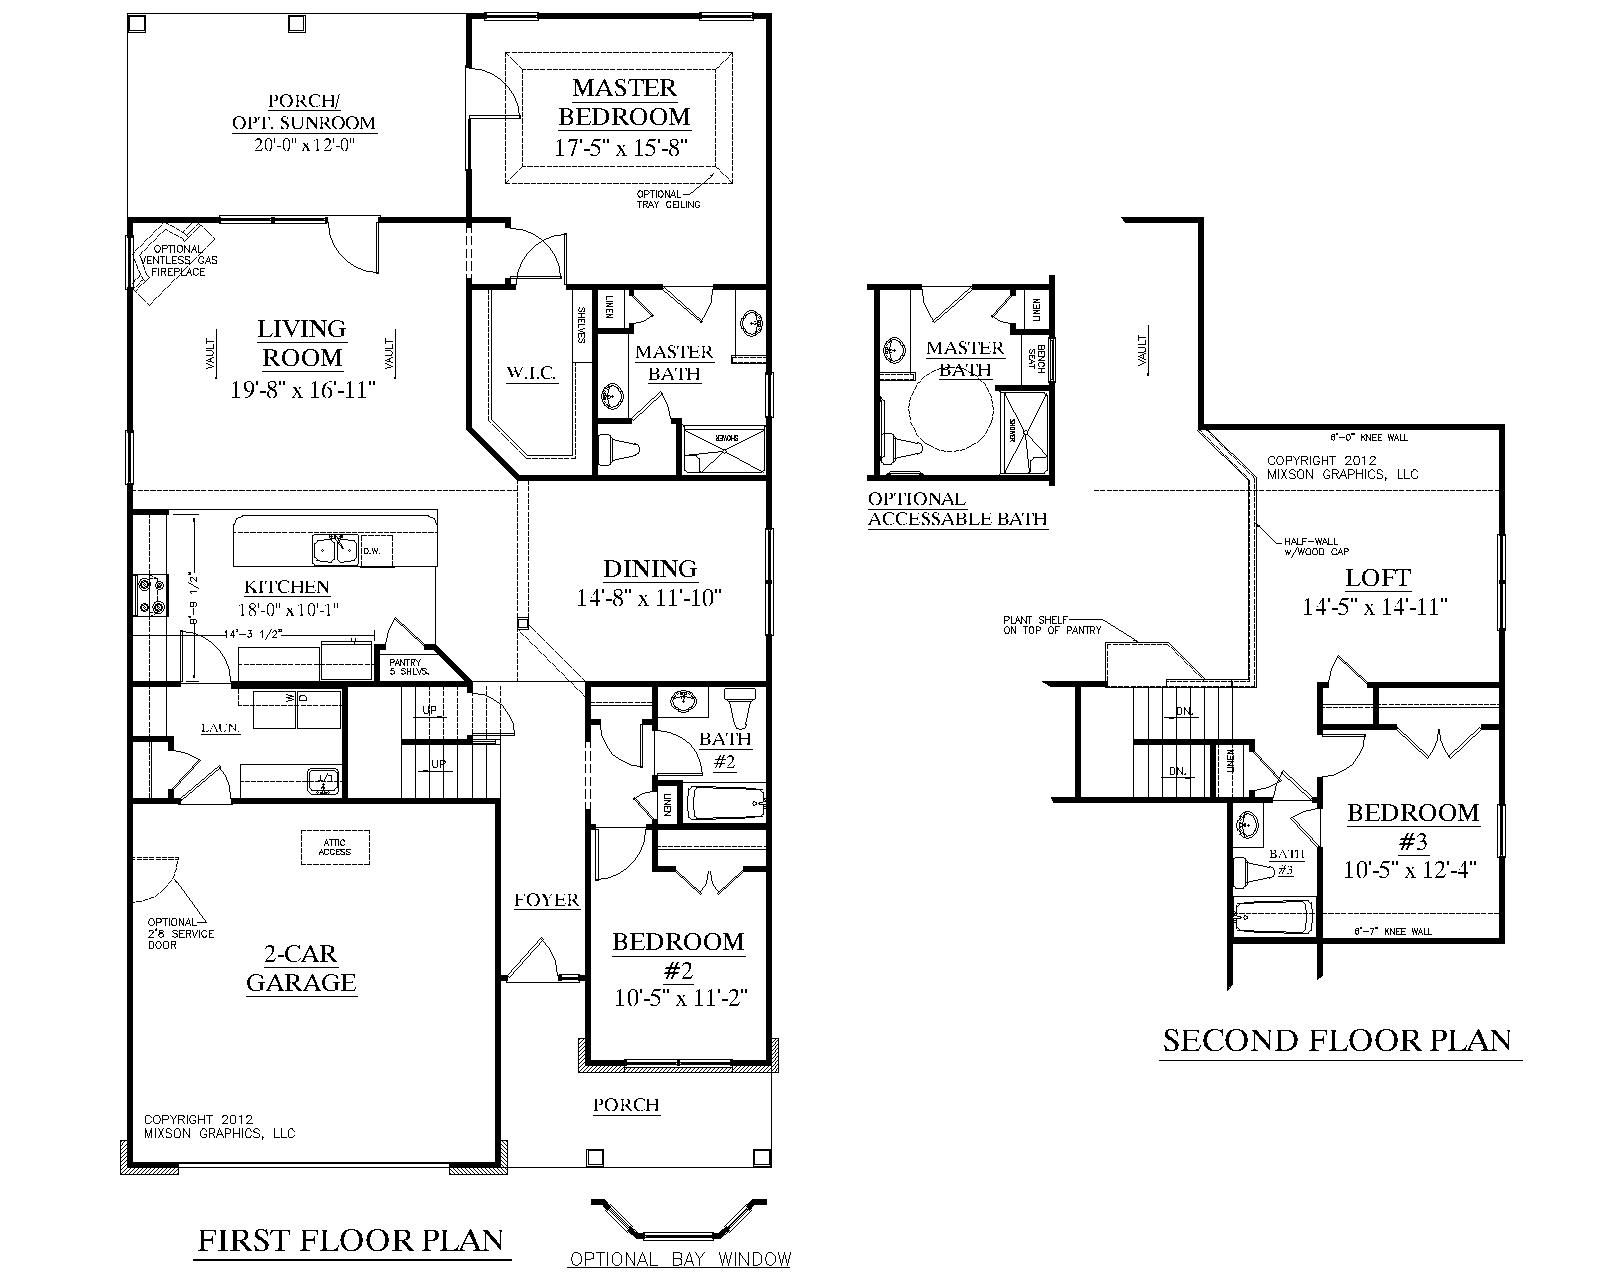 House plan 2224 kingstree floor plan traditional 1 1 2 for Small 1 1 2 story house plans